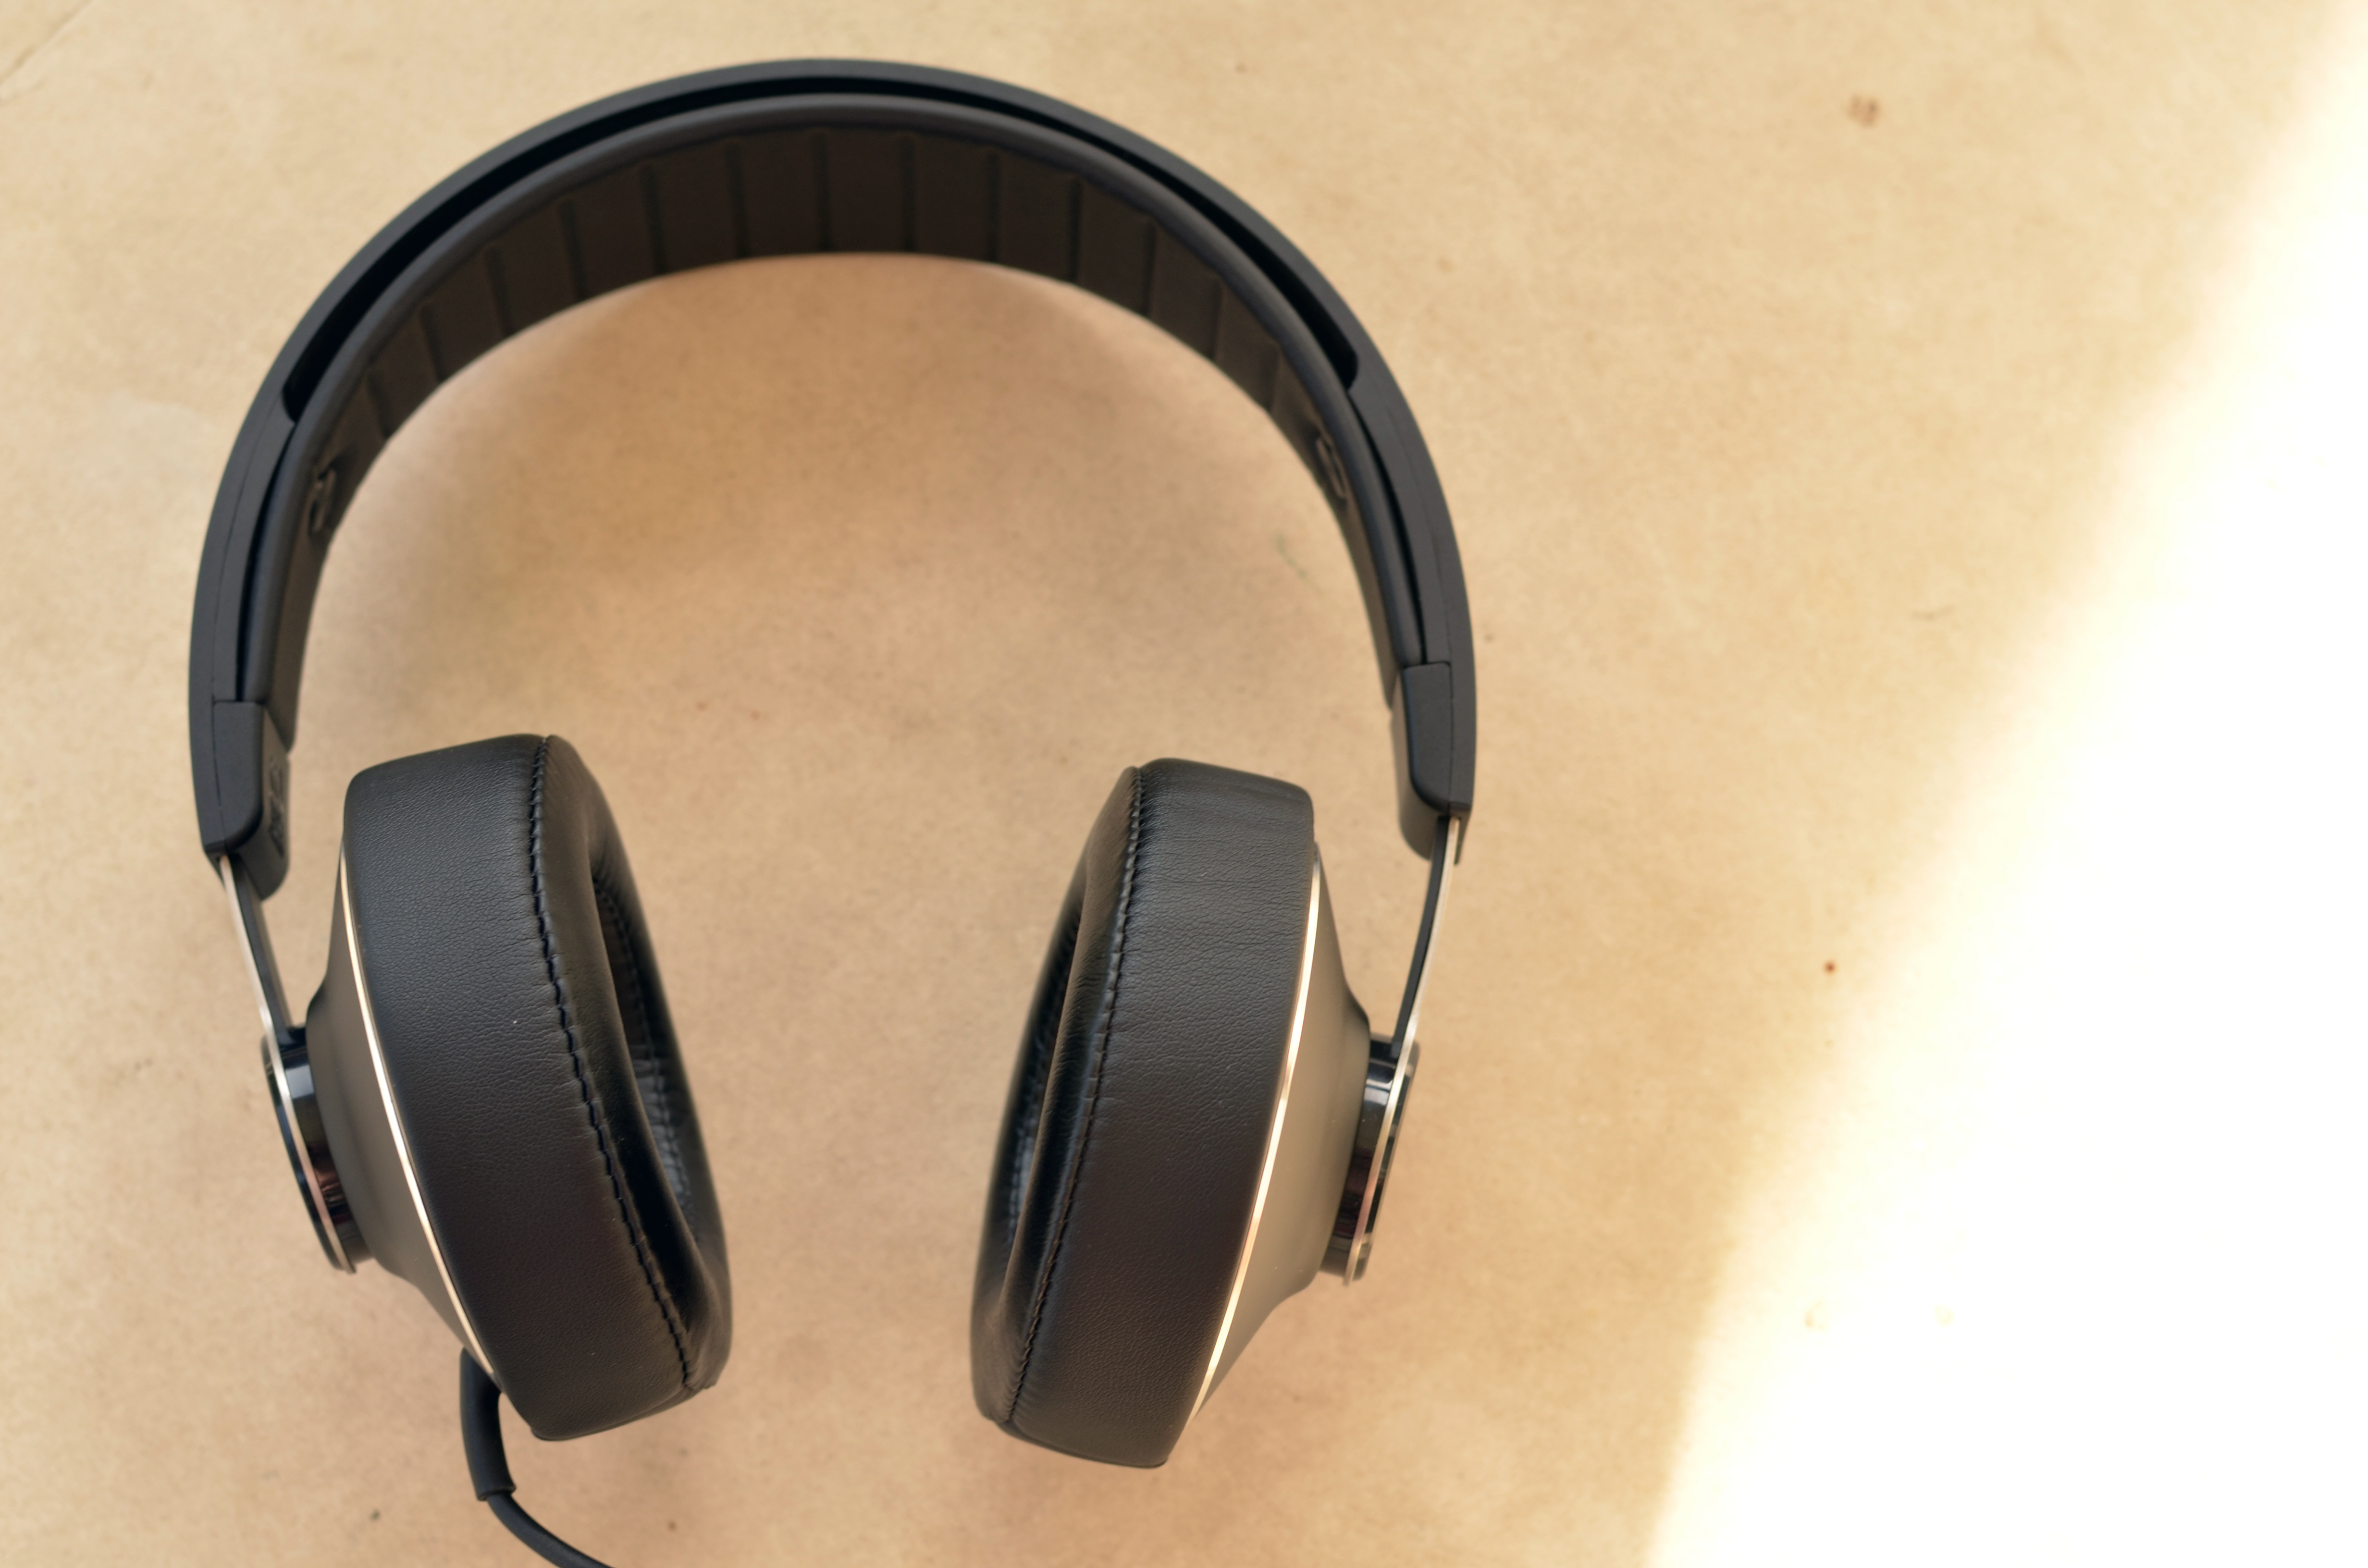 Philips Shp8000 10 Hi Fi Headphones Black Reviews Headphone Free Ongkir Dry Iron Hd 1173 40 Semi Open Full Size Around Ear Priced At About 8000 Usd Some Have Even Found Them For With Shipping To The Usa